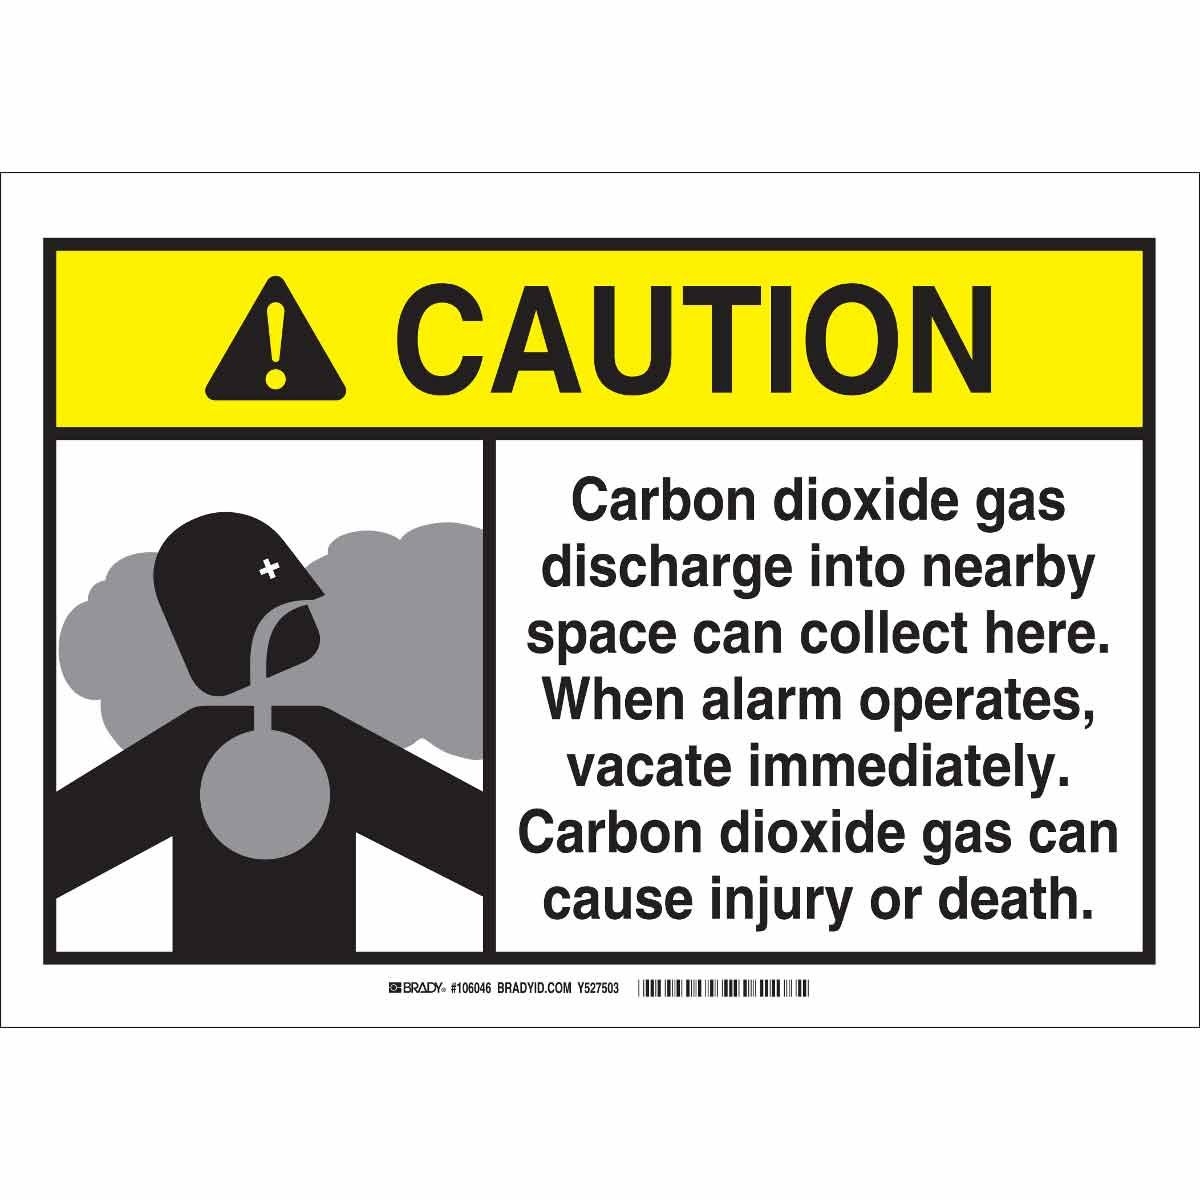 carbon dioxide gas Carbon dioxide is a colourless, odorless gas when inhaled at concentrations much higher than usual atmospheric levels, it can produce a sour taste in the mouth and a stinging sensation in the nose and throat.